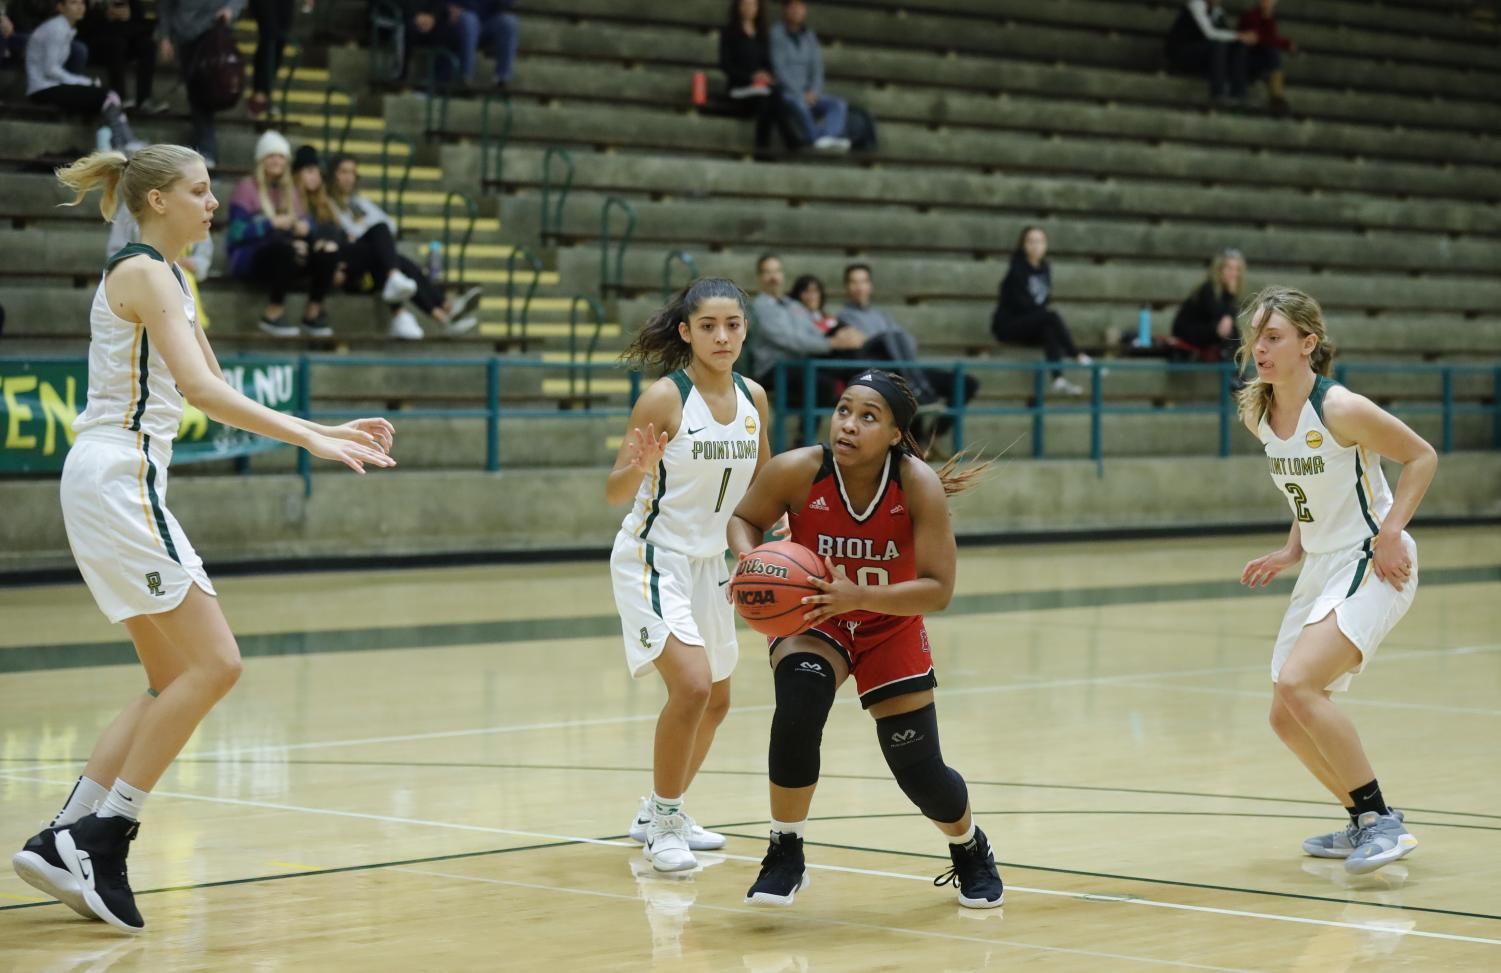 Junior guard Tatum Brimley drives past Point Loma defenders during the Eagles' 60-53 loss at PLNU on Dec. 5, 2018.